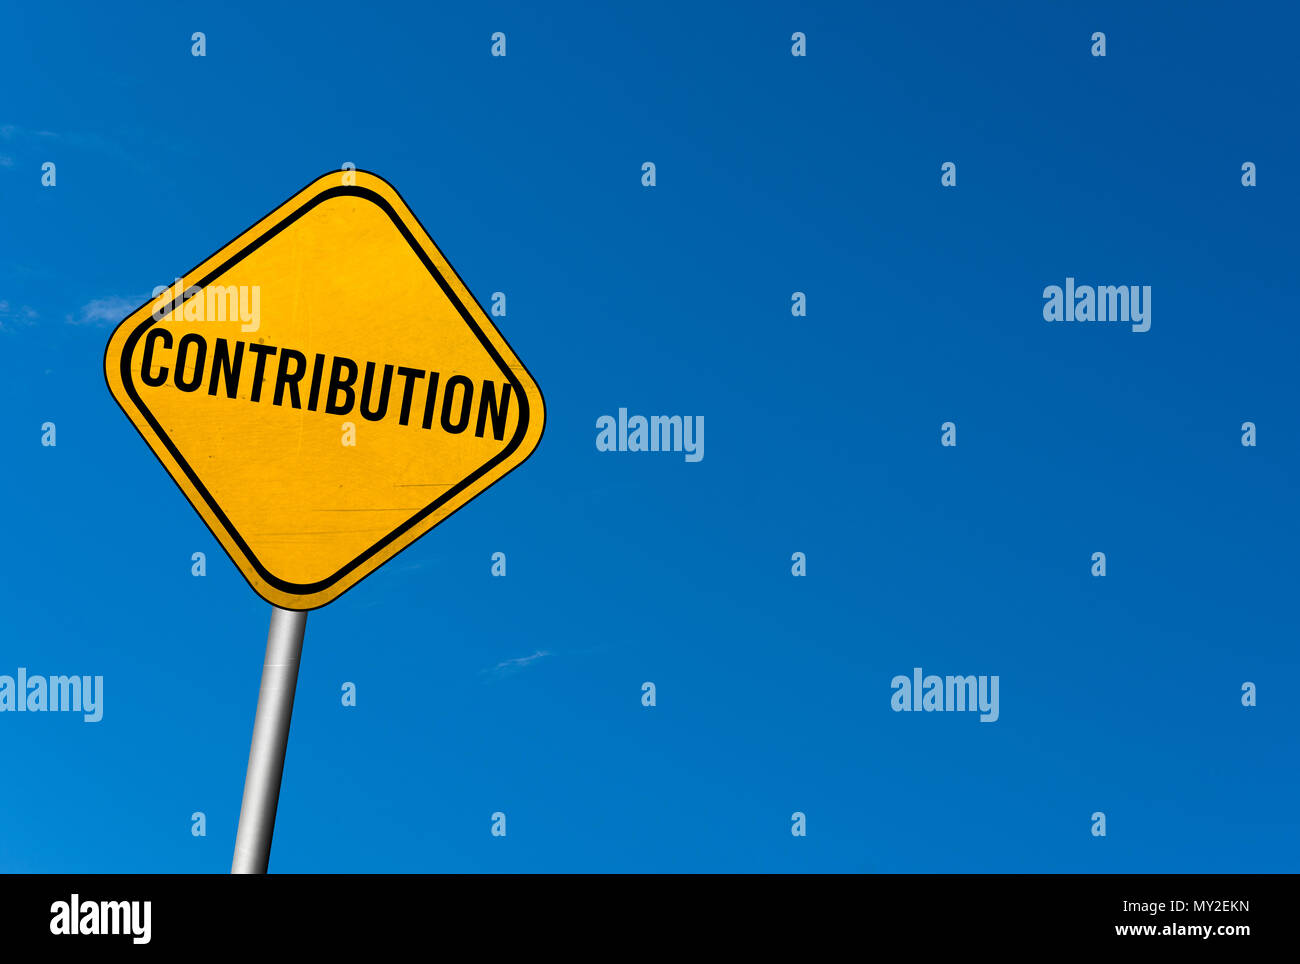 contribution - yellow sign with blue sky - Stock Image